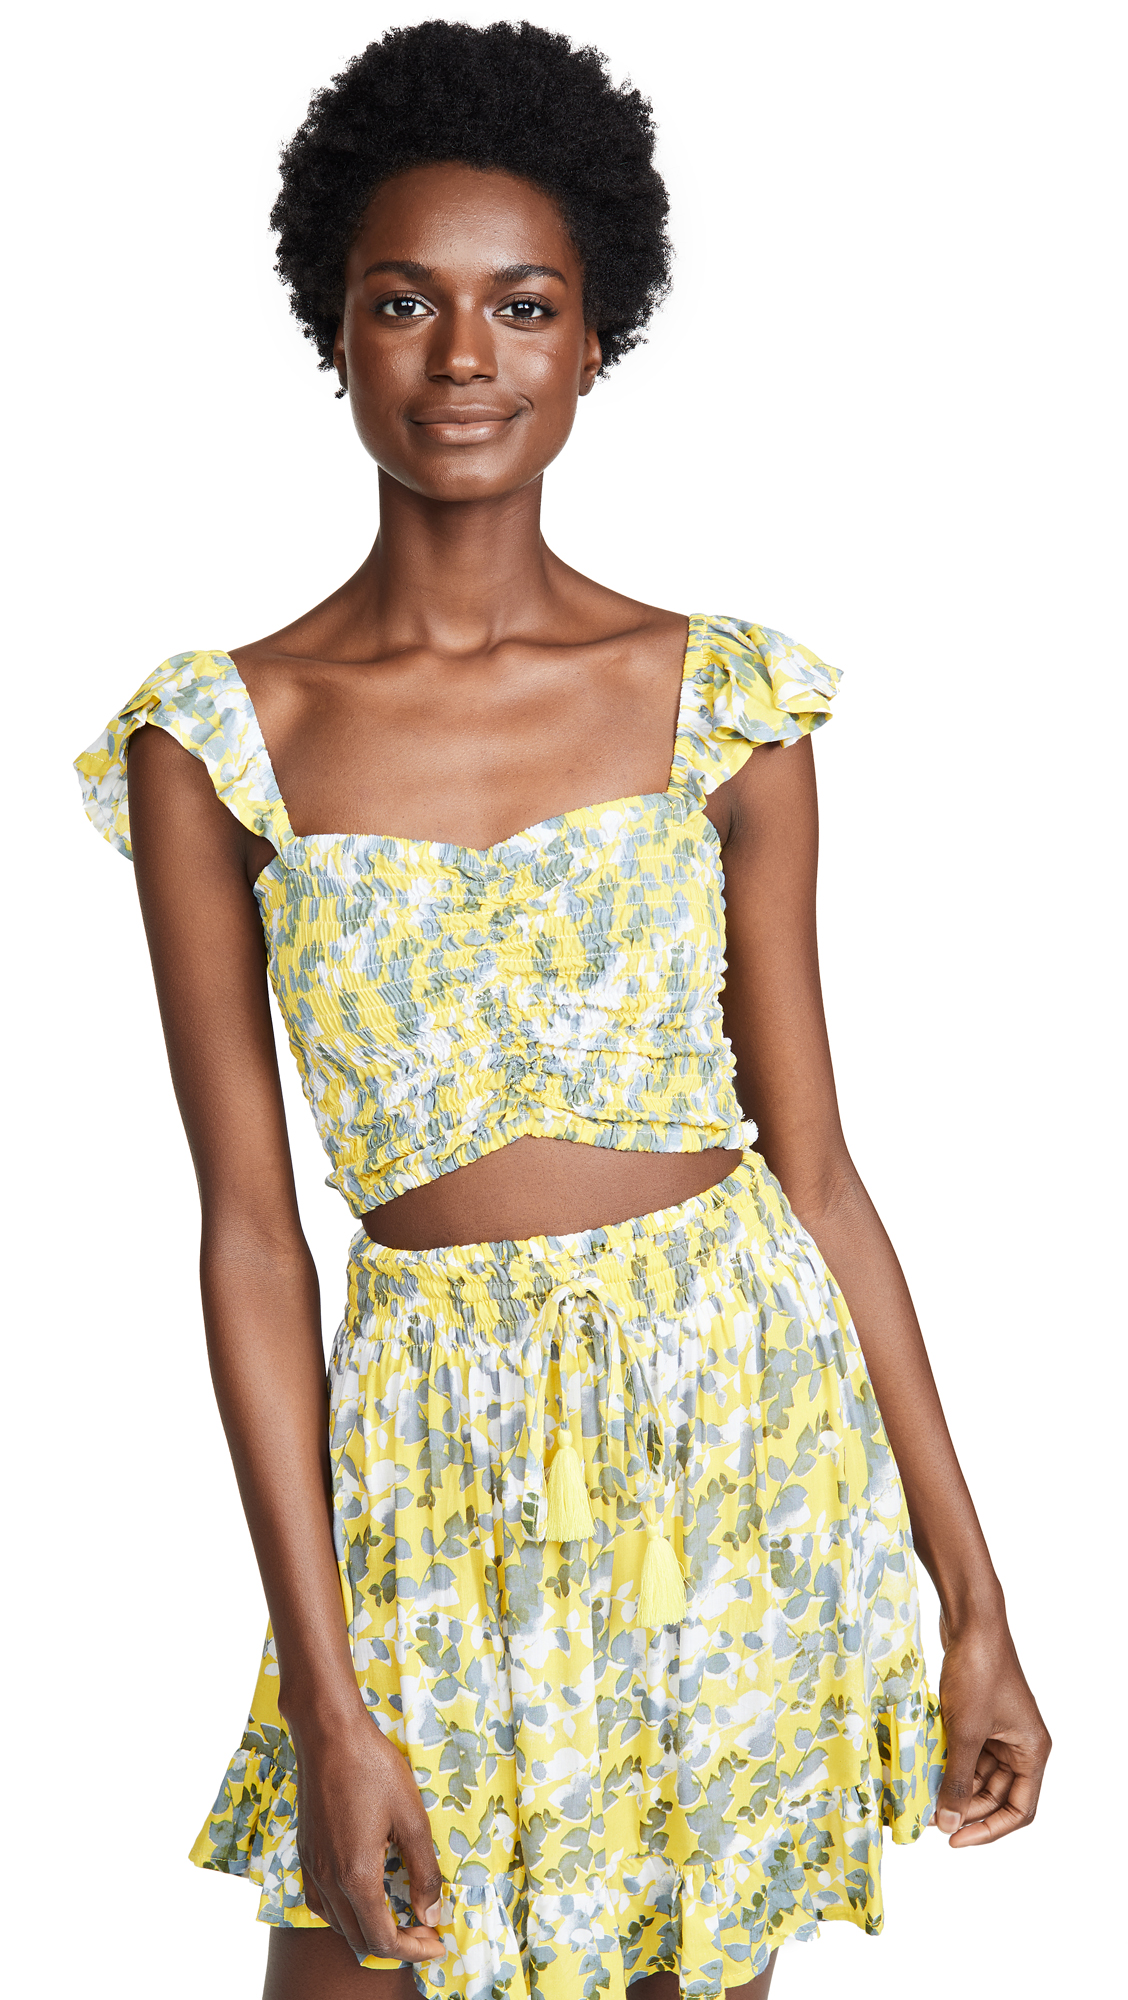 TIARE HAWAII Hollie Top & Skirt Set in Shimmer Yellow/Grey